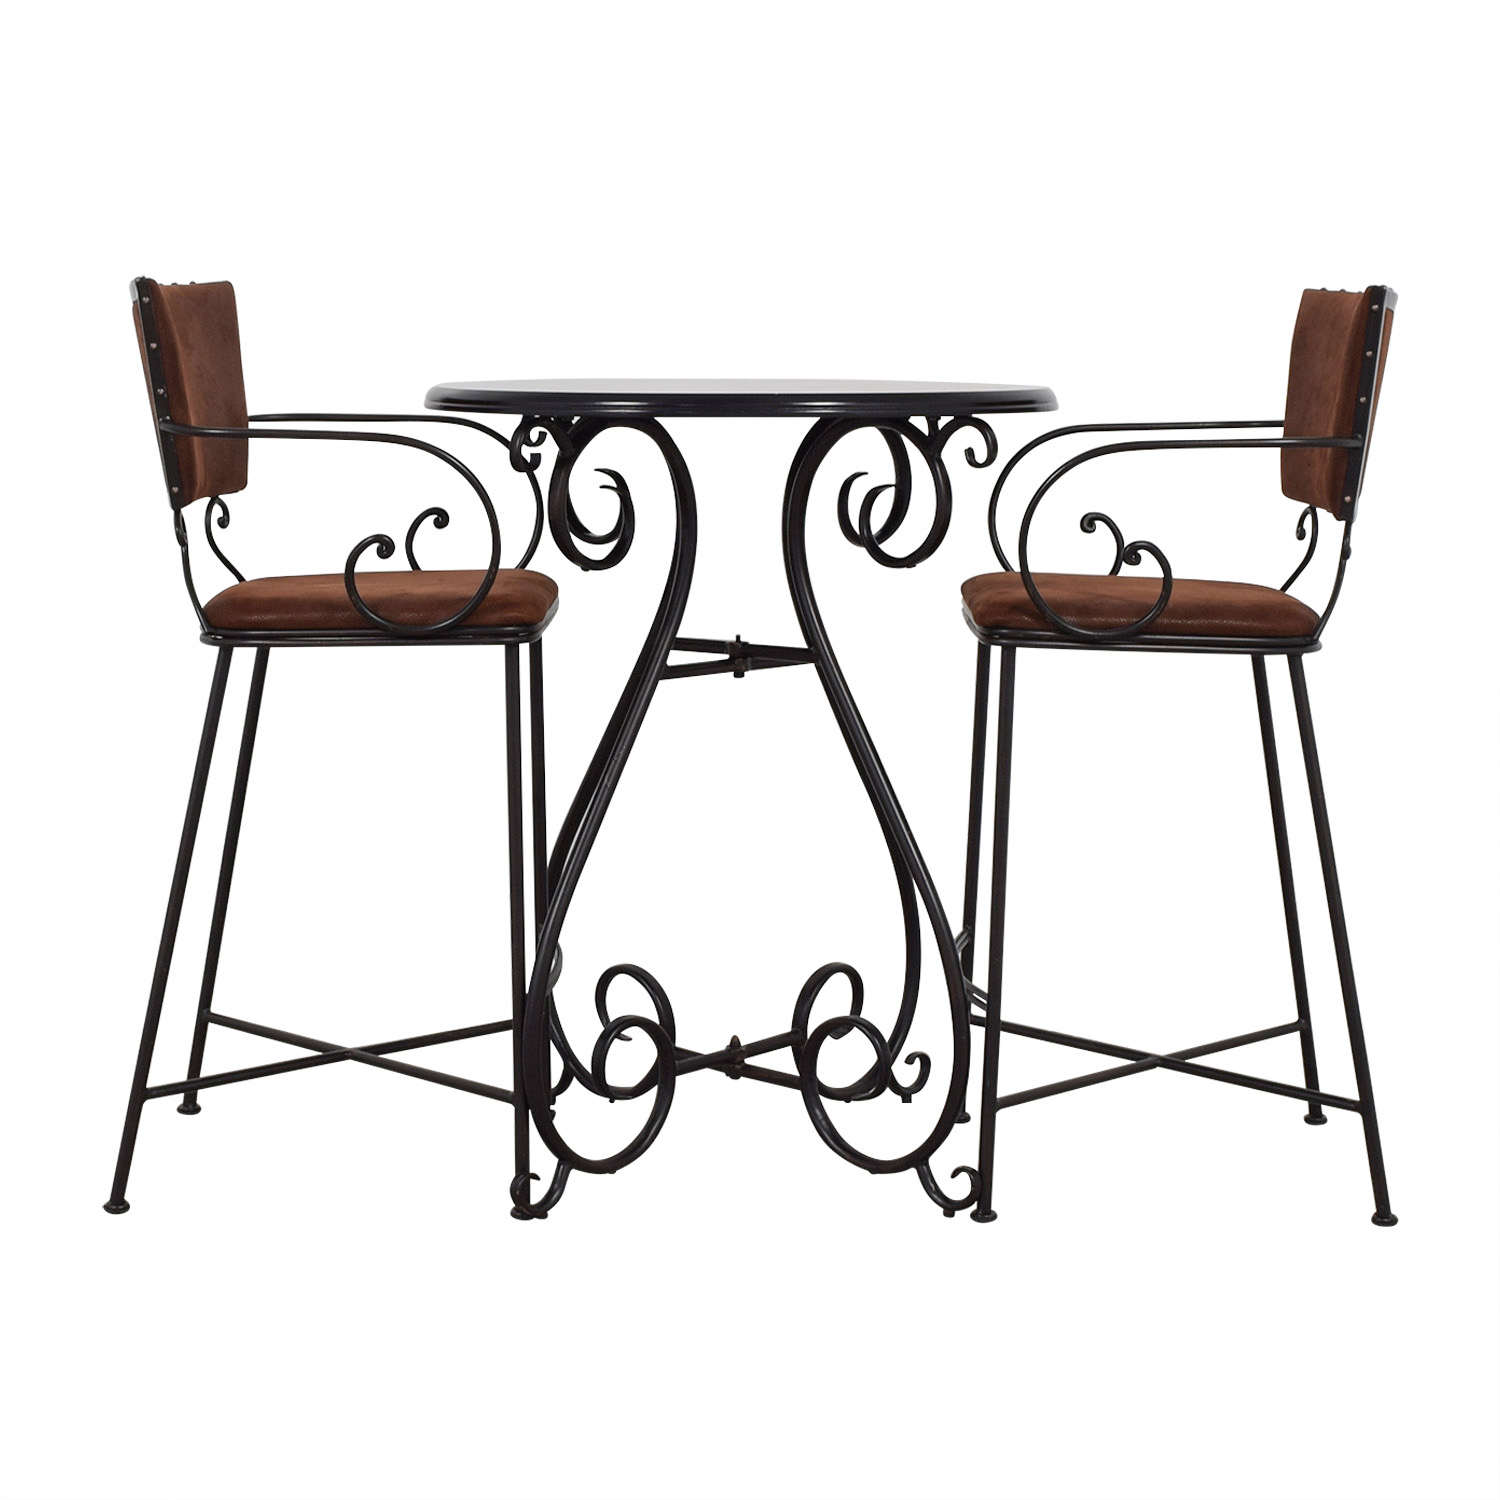 Pier 1 Imports Pier 1 Imports Chesington Tuscan Brown Bar Table with Chairs nj